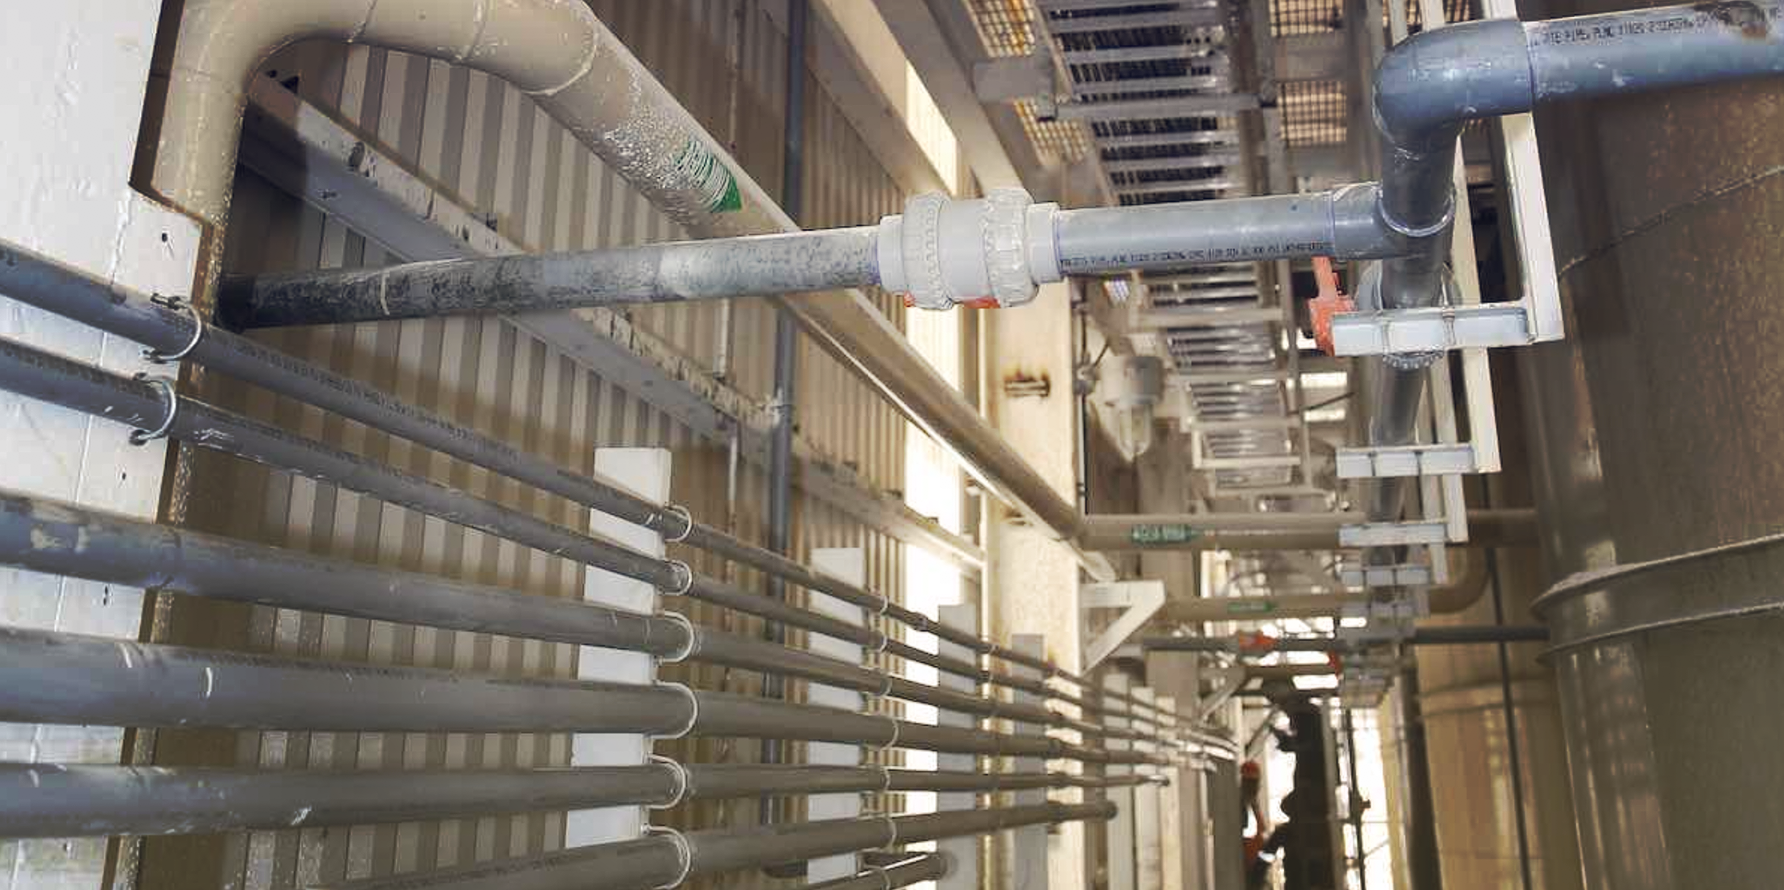 How to Optimize an Industrial Piping System for Pressure Loss